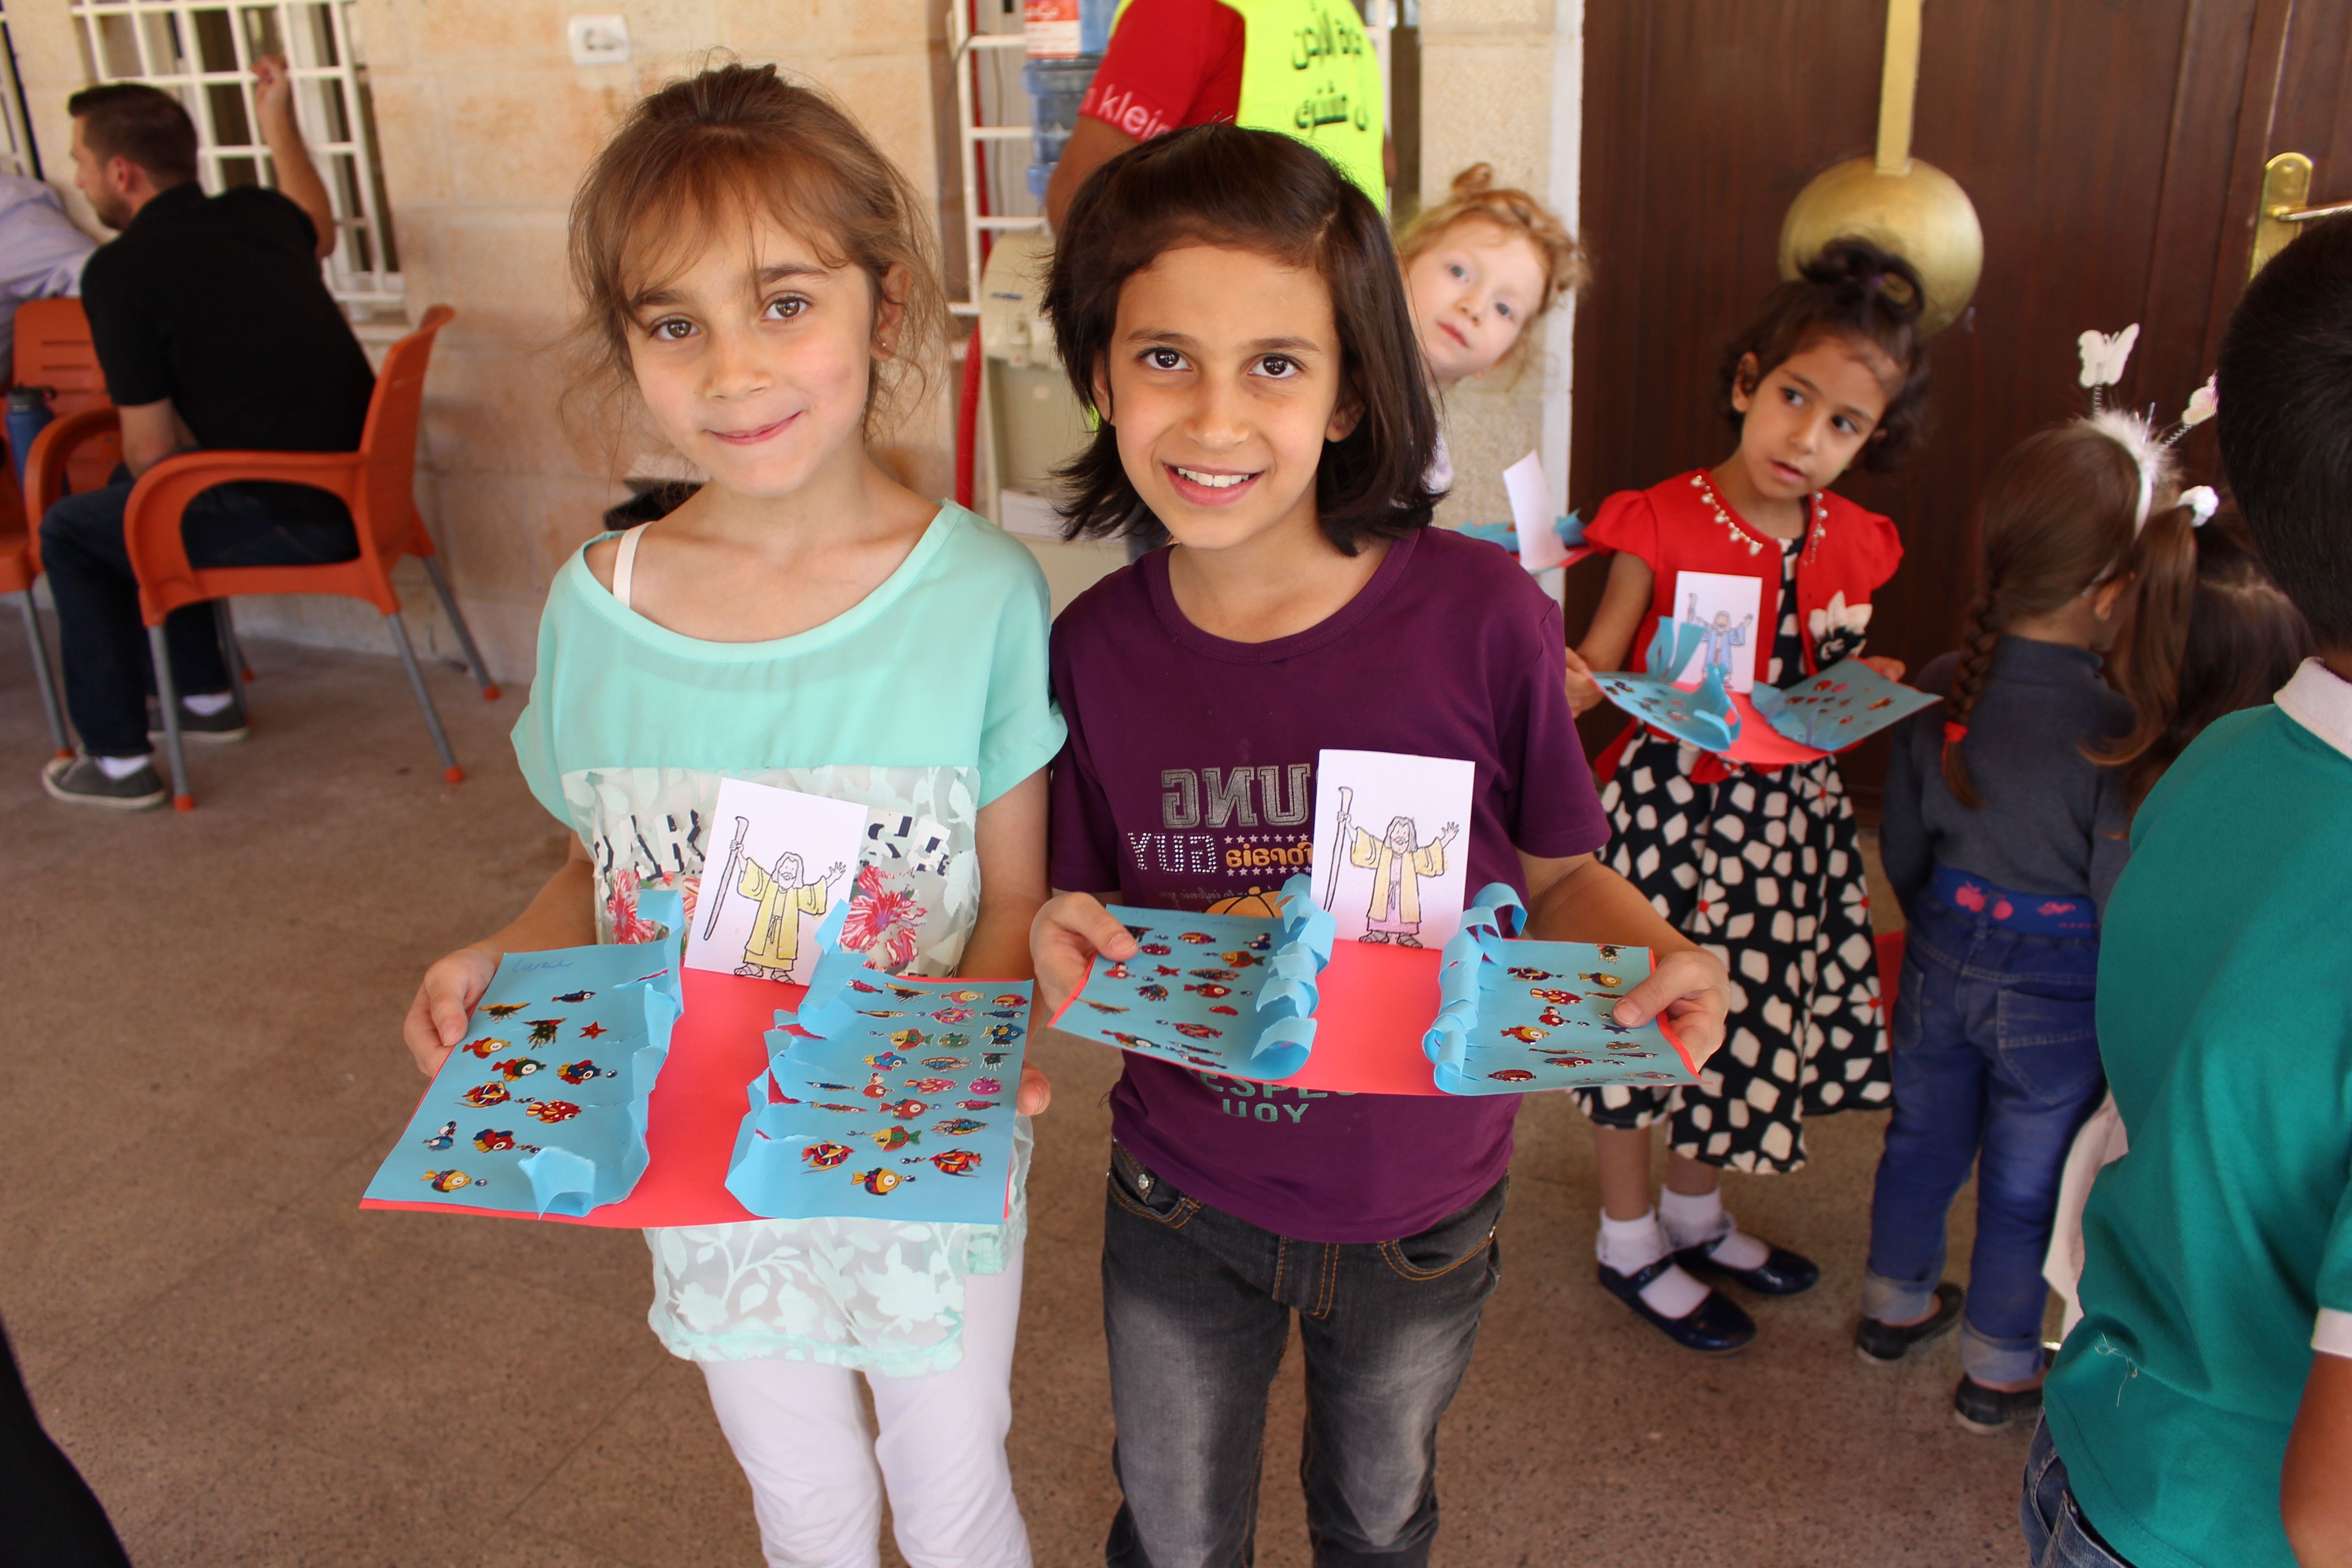 Two little girls pose with their Moses parting the Red Sea crafts.